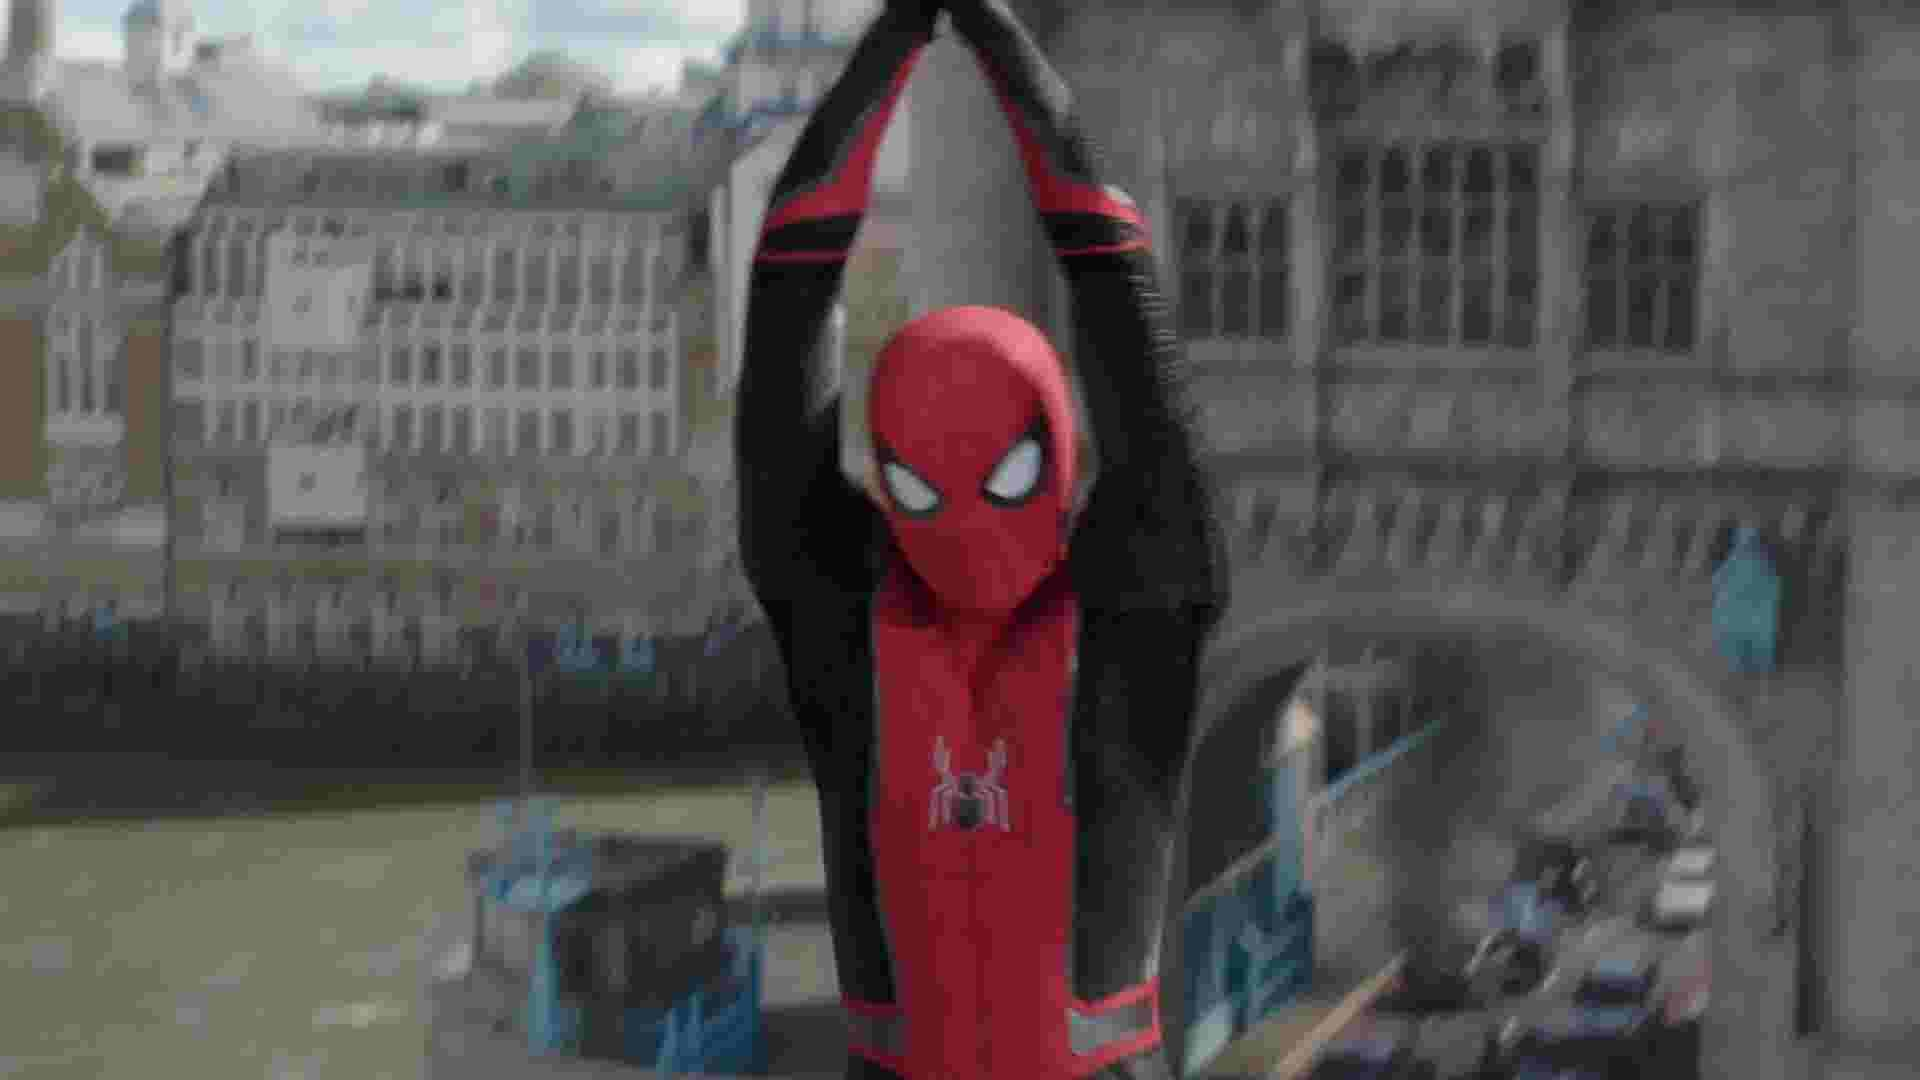 'Spider-man: Far From Home' trailer introduces Jake Gyllenhaal as Mysterio